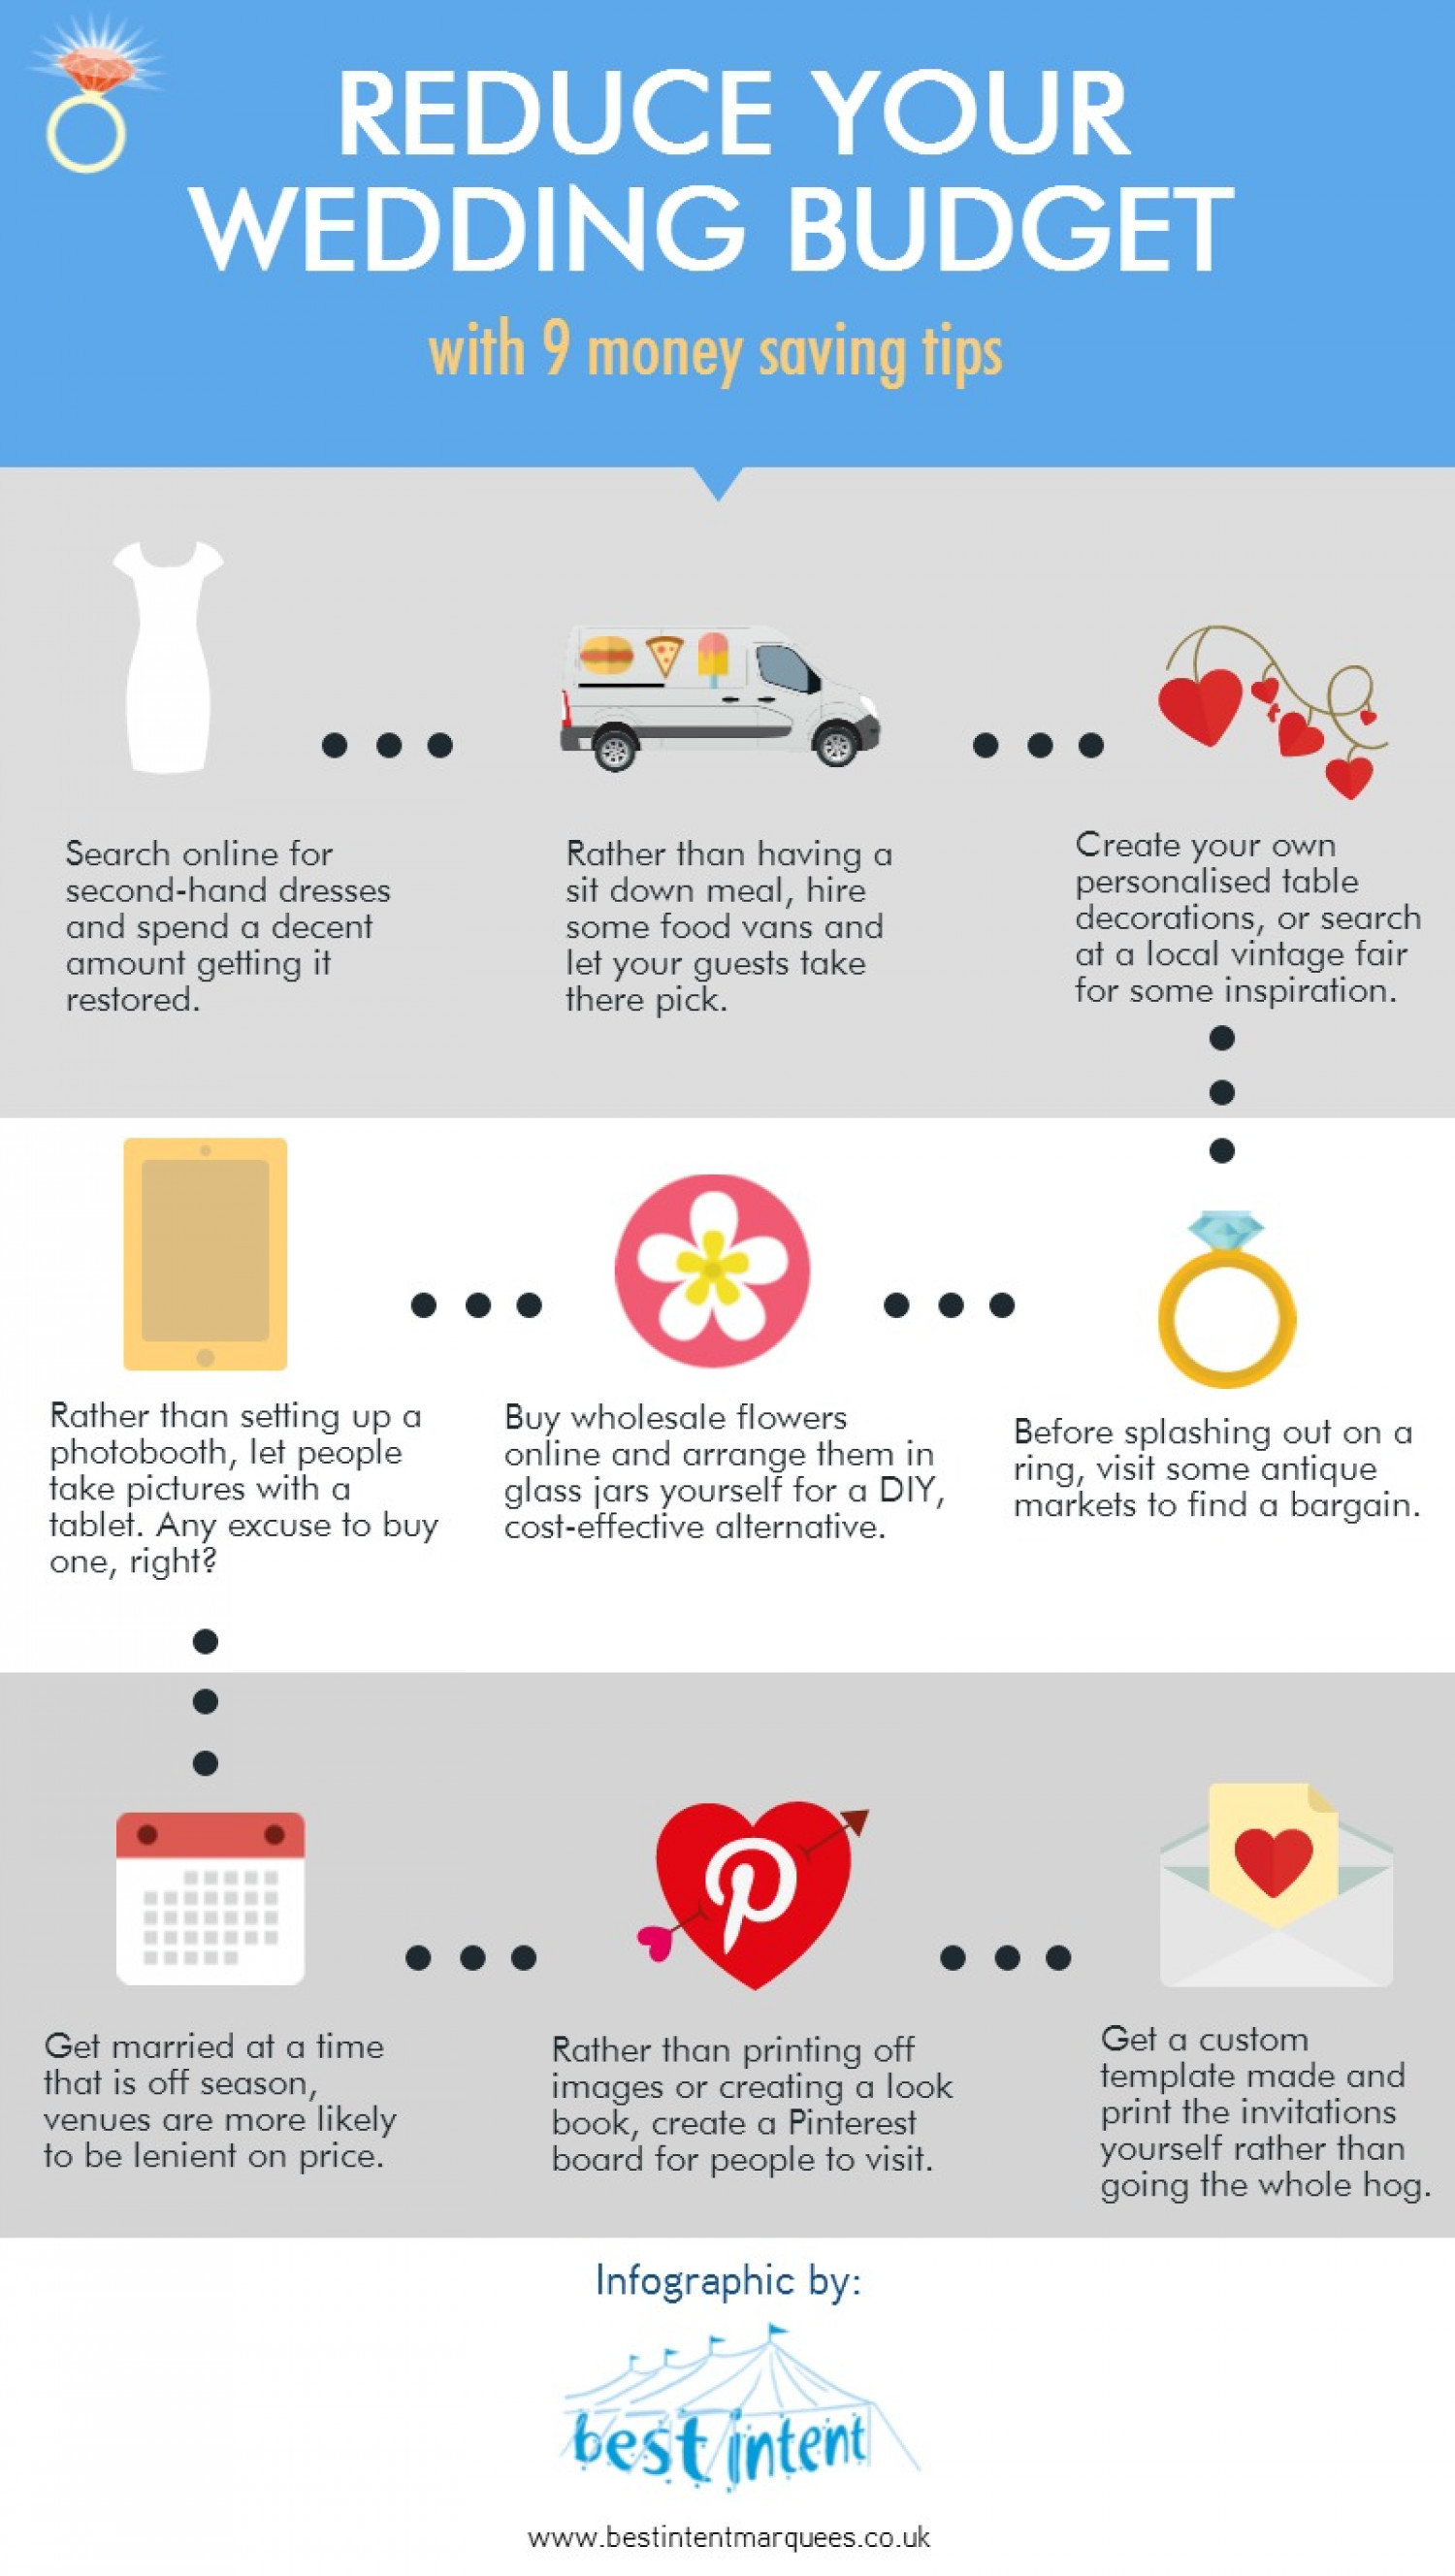 9 ways to dramatically reduce your wedding budget Infographic